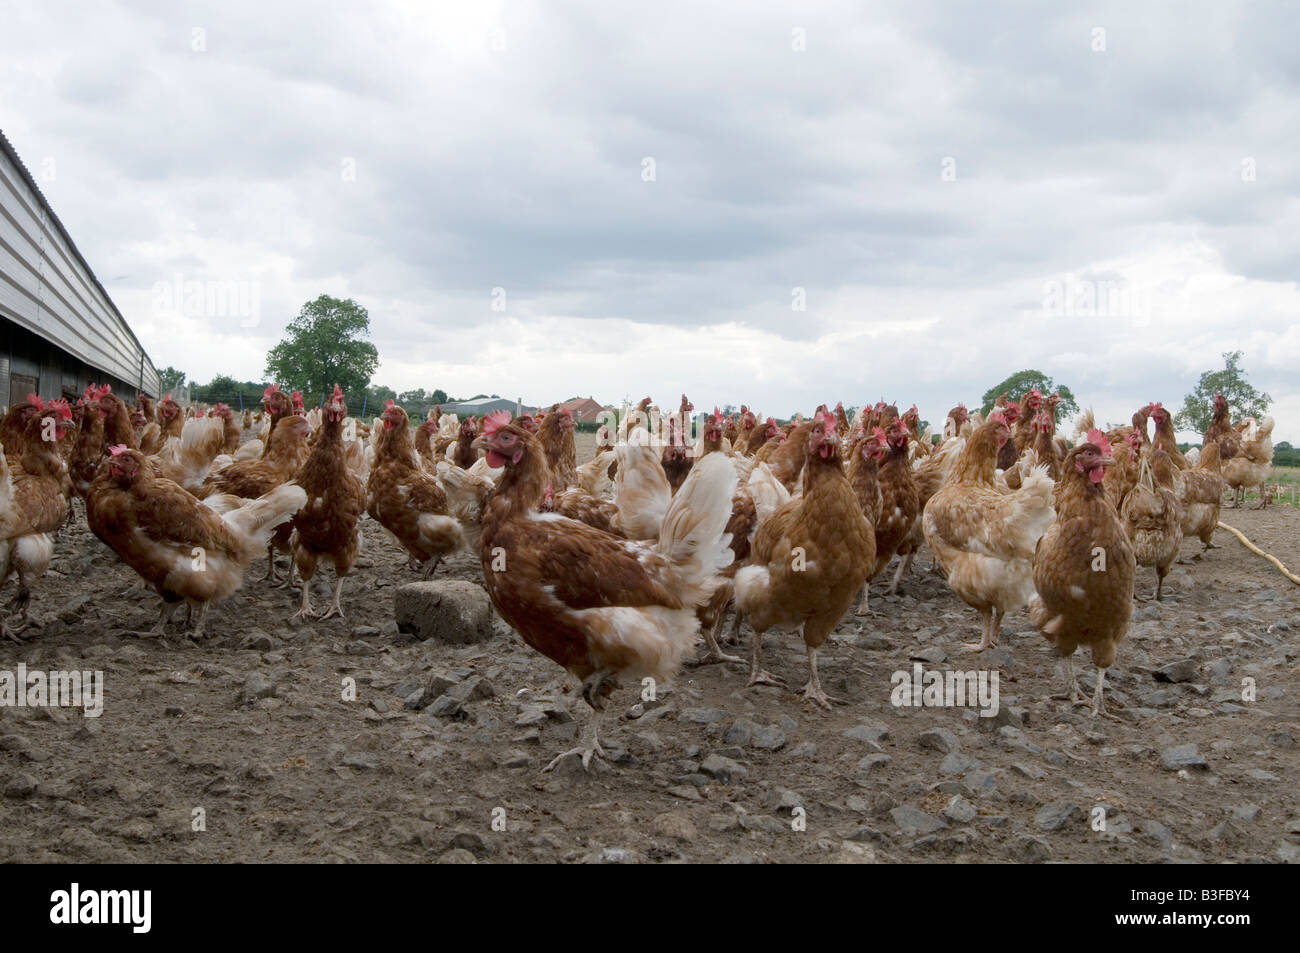 Freerange chicken chickens hen hens poultry free range eggs farming farmer farm bird birds food production shed - Stock Image